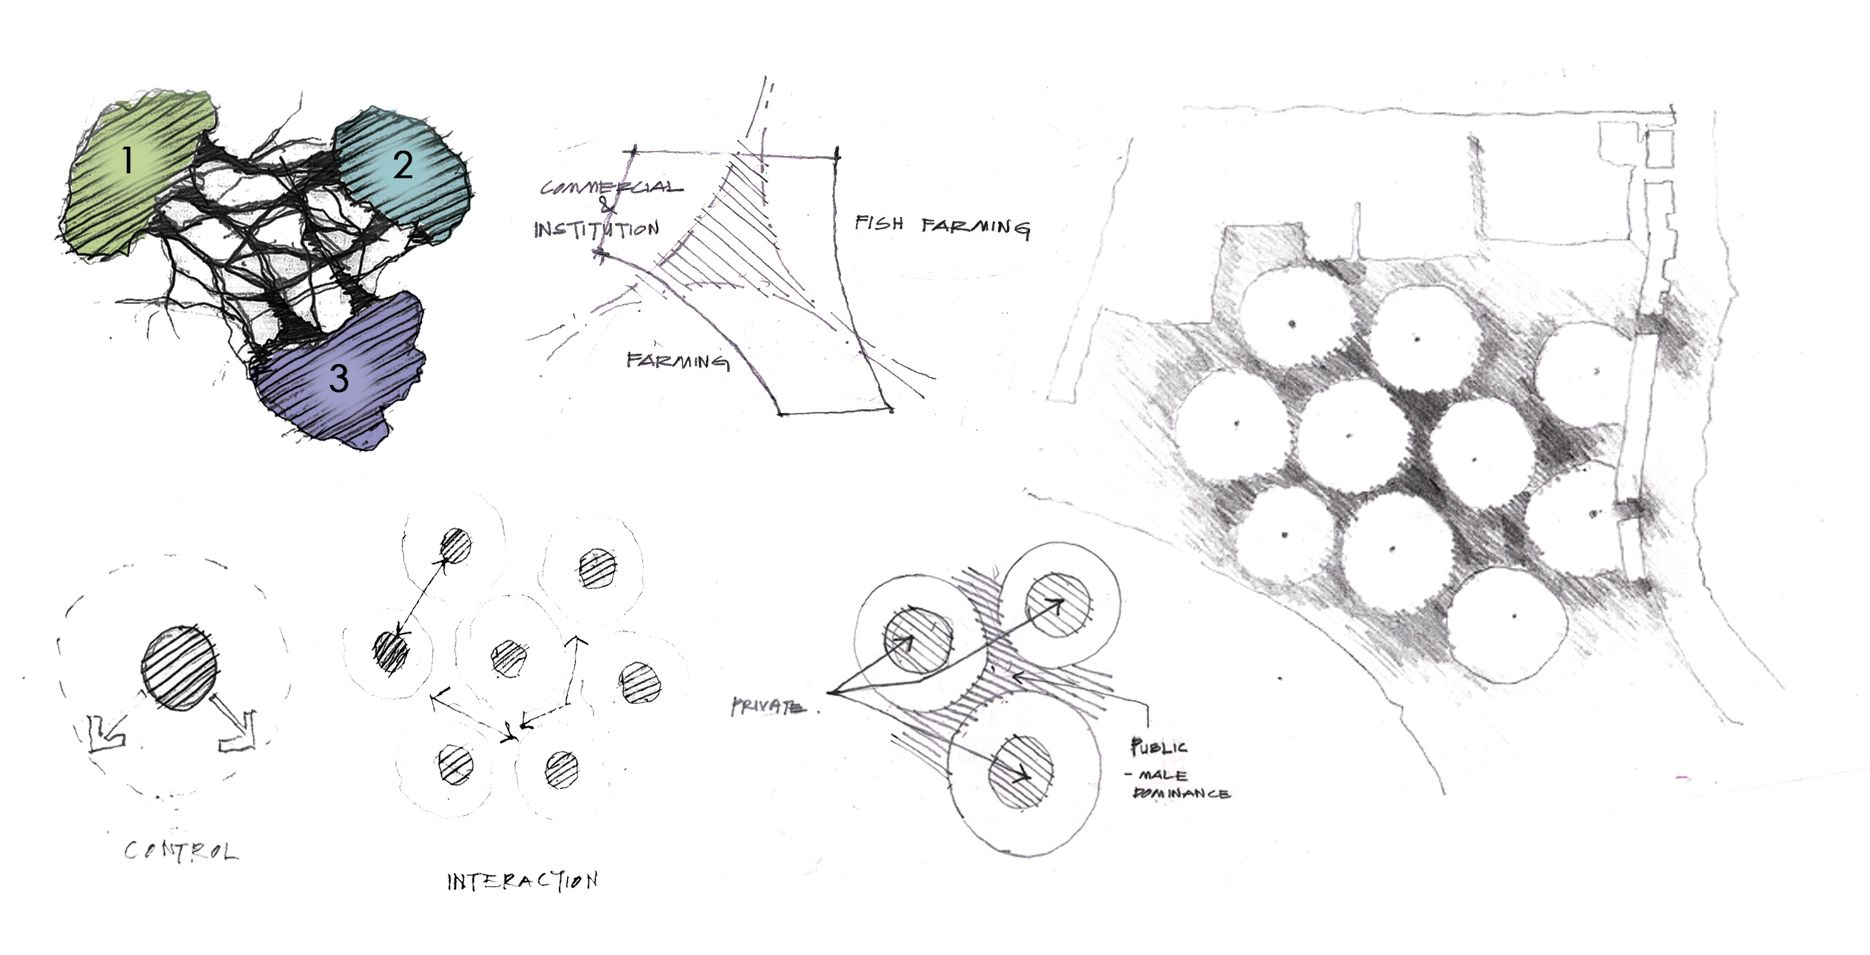 Circulation Drawings Architecture Abstract